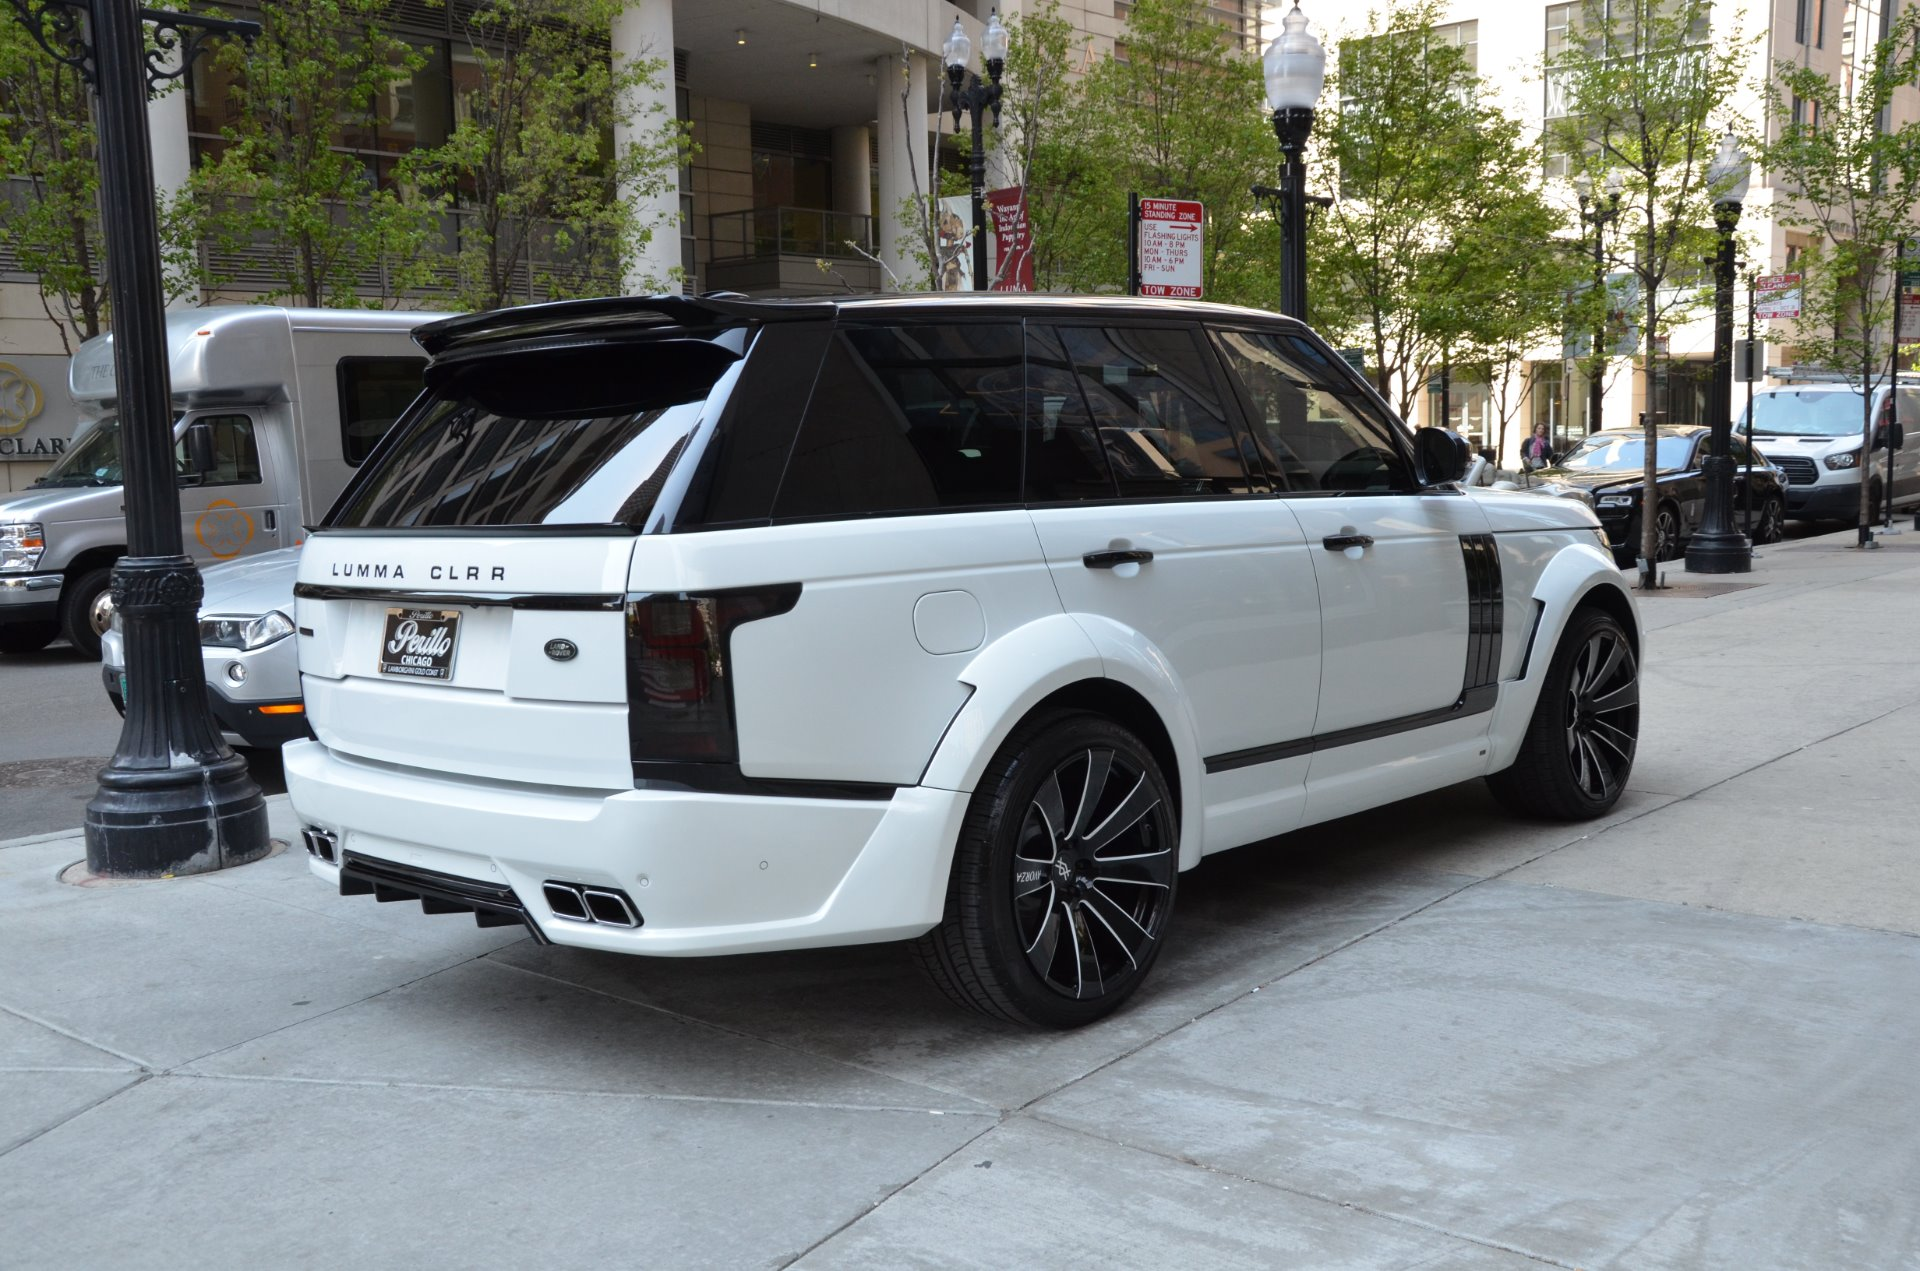 2015 land rover range rover supercharged stock 12734 for sale near chicago il il land rover. Black Bedroom Furniture Sets. Home Design Ideas